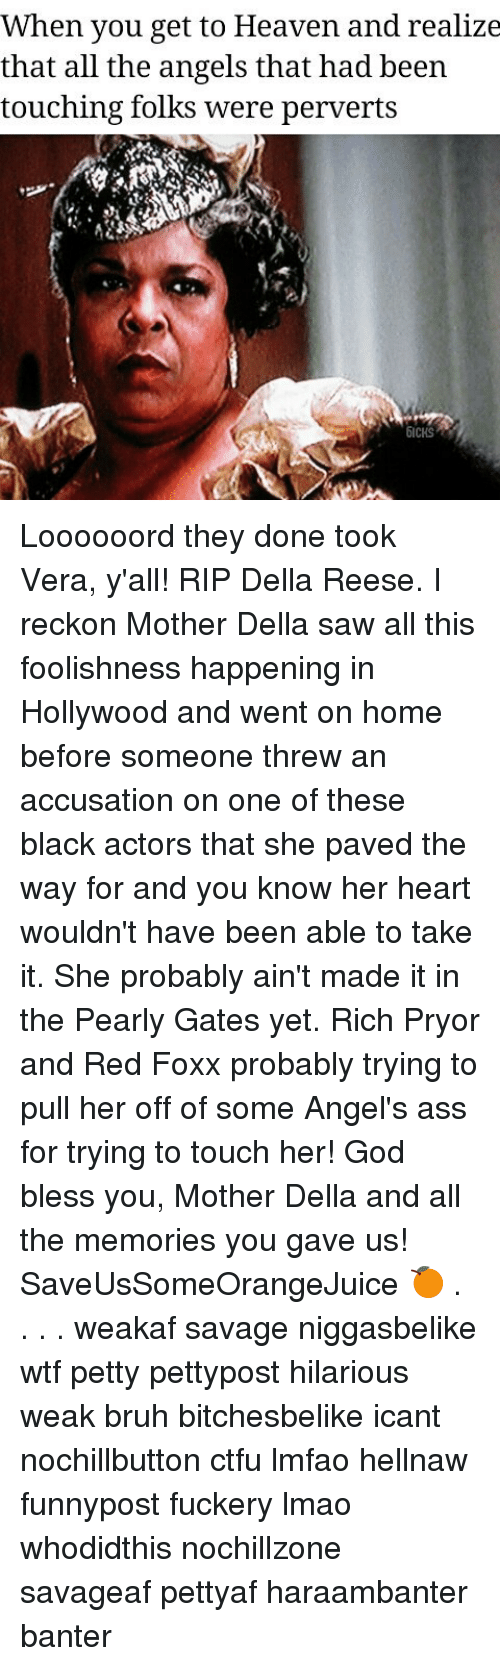 Ass, Bruh, and Ctfu: When you get to Heaven and realize  that all the angels that had been  touching folks were perverts  6ICKS Loooooord they done took Vera, y'all! RIP Della Reese. I reckon Mother Della saw all this foolishness happening in Hollywood and went on home before someone threw an accusation on one of these black actors that she paved the way for and you know her heart wouldn't have been able to take it. She probably ain't made it in the Pearly Gates yet. Rich Pryor and Red Foxx probably trying to pull her off of some Angel's ass for trying to touch her! God bless you, Mother Della and all the memories you gave us! SaveUsSomeOrangeJuice 🍊 . . . . weakaf savage niggasbelike wtf petty pettypost hilarious weak bruh bitchesbelike icant nochillbutton ctfu lmfao hellnaw funnypost fuckery lmao whodidthis nochillzone savageaf pettyaf haraambanter banter